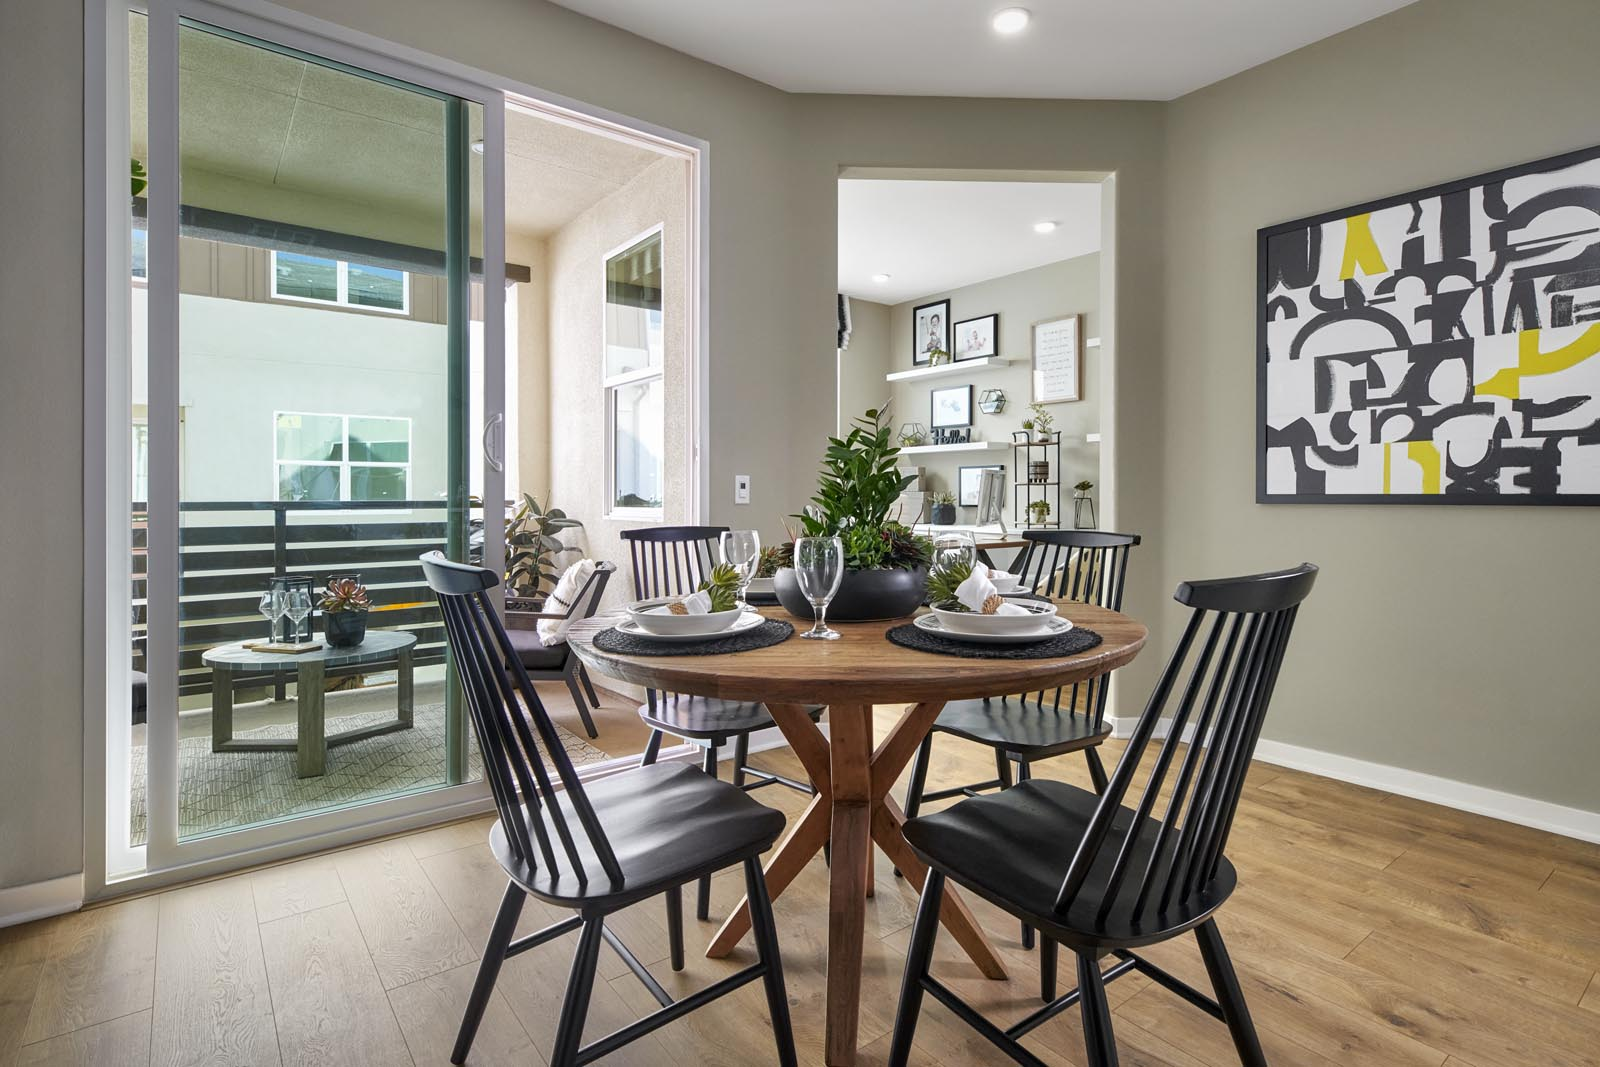 Dining Area | Residence 2 | Enliven | New Homes in Rancho Cucamonga, CA | Van Daele Homes